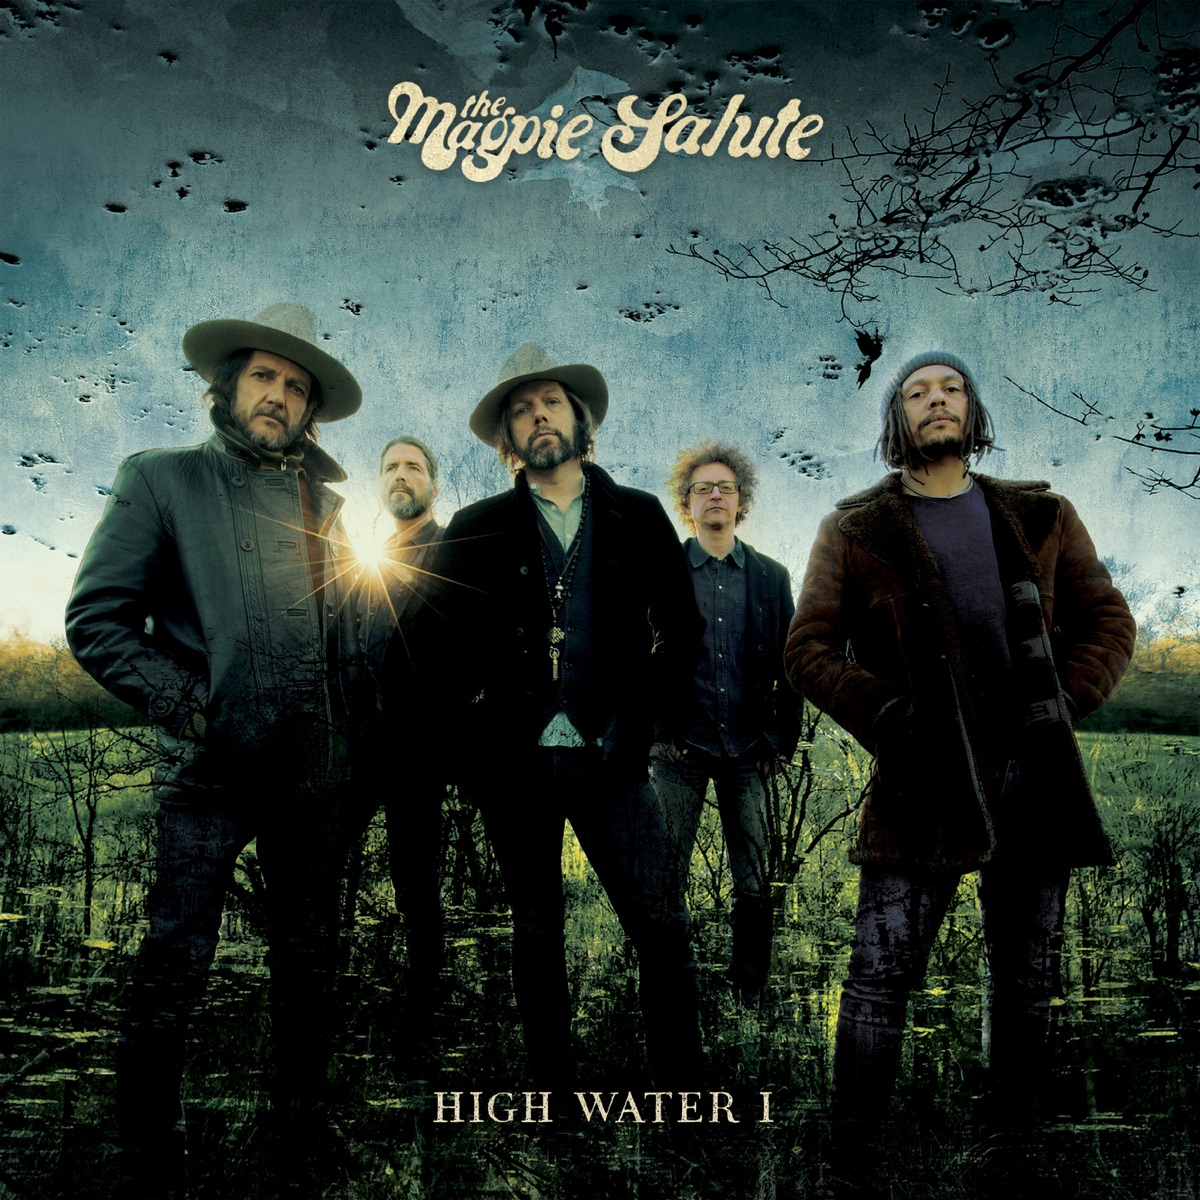 High Water I The Magpie Salute CD cover